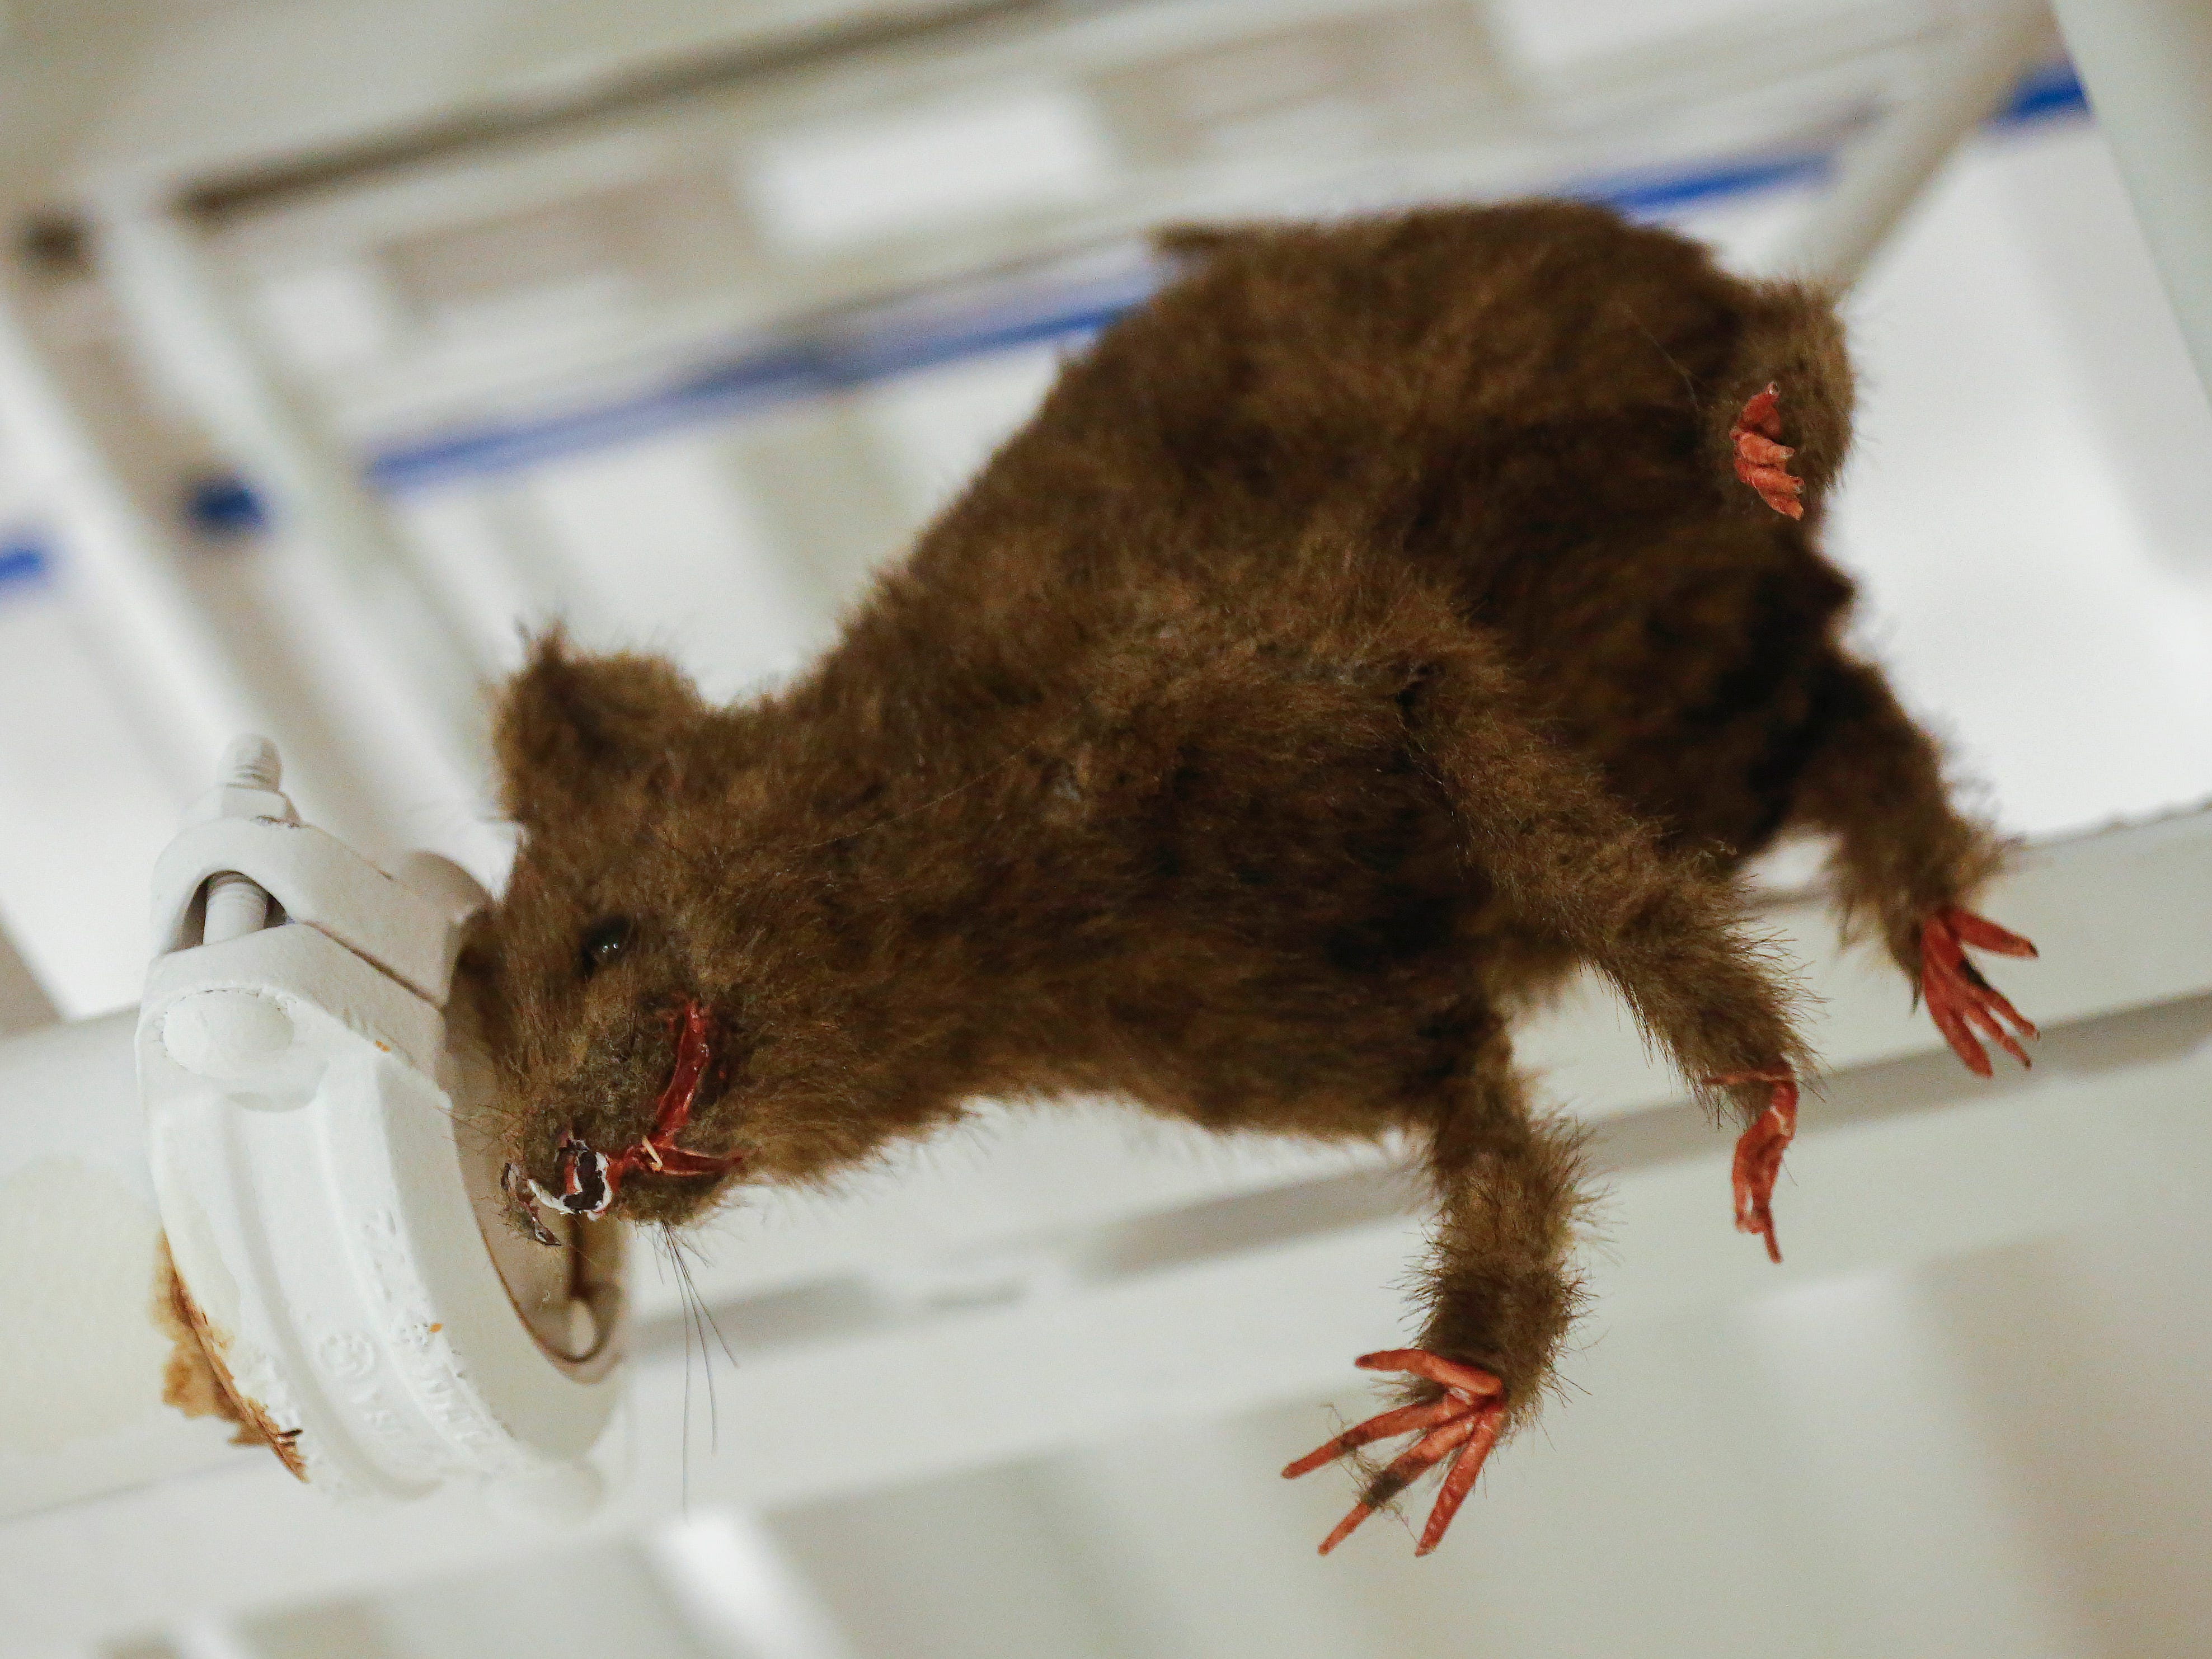 A stuffed rat hangs out in the ceiling at the Discovery Center where the new 9-hole indoor miniature golf course is located at the science museum.